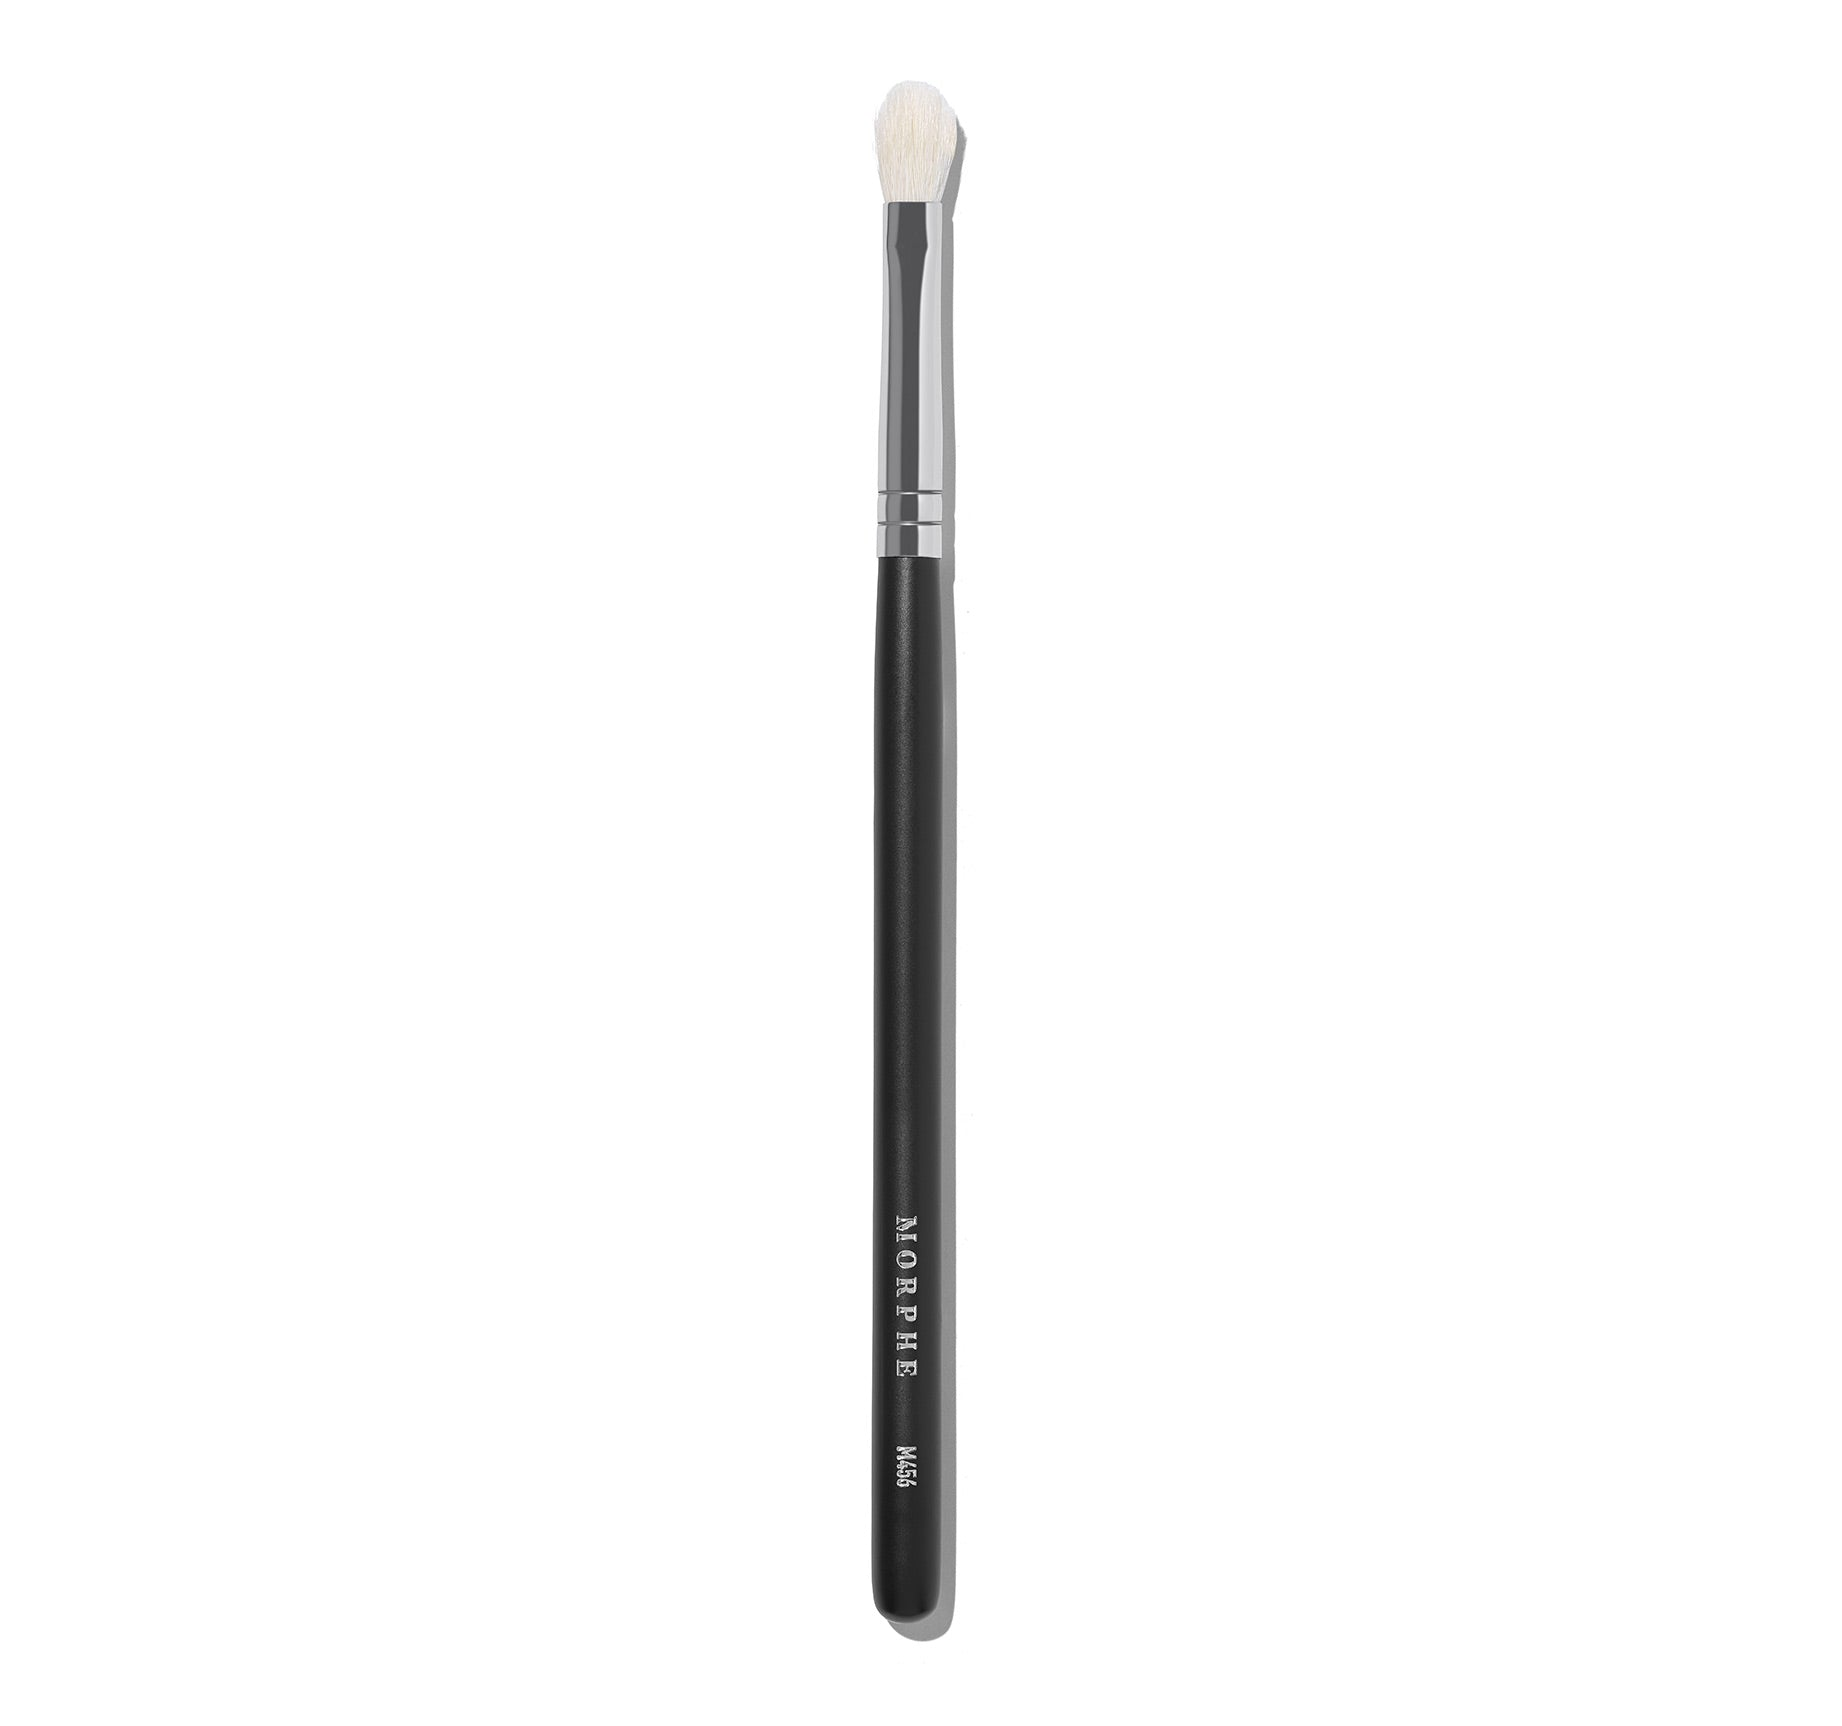 M456 - MINI FIRM BLENDING BRUSH